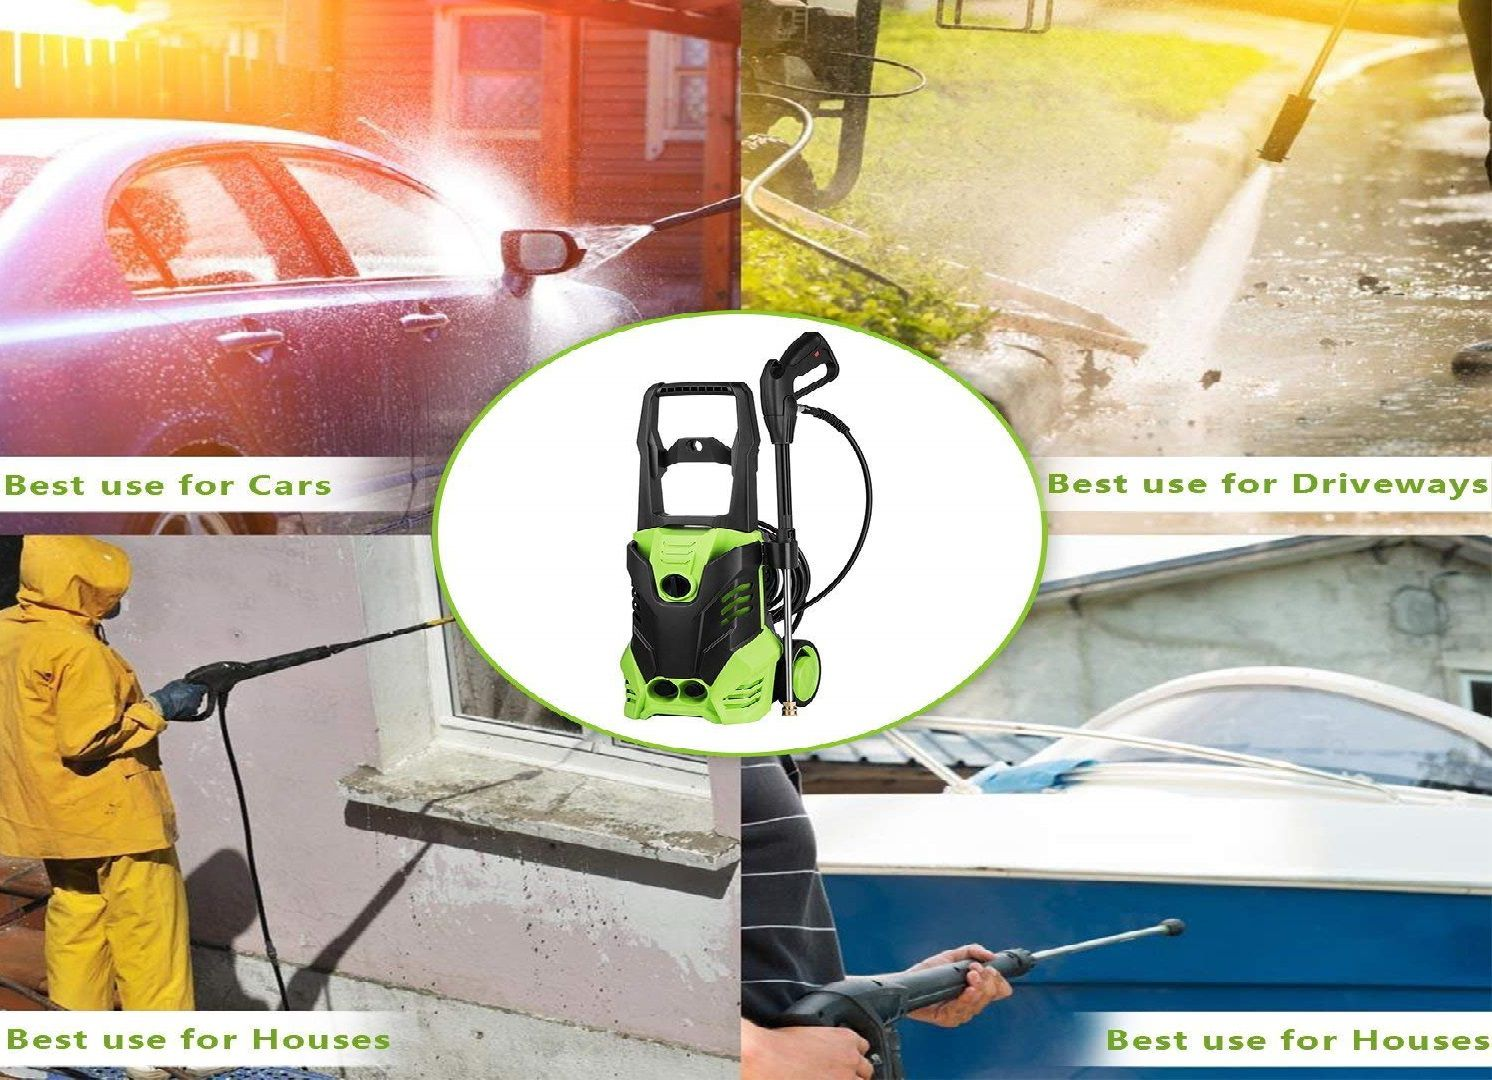 Ncient SVX4500 High Pressure Power Washer Review